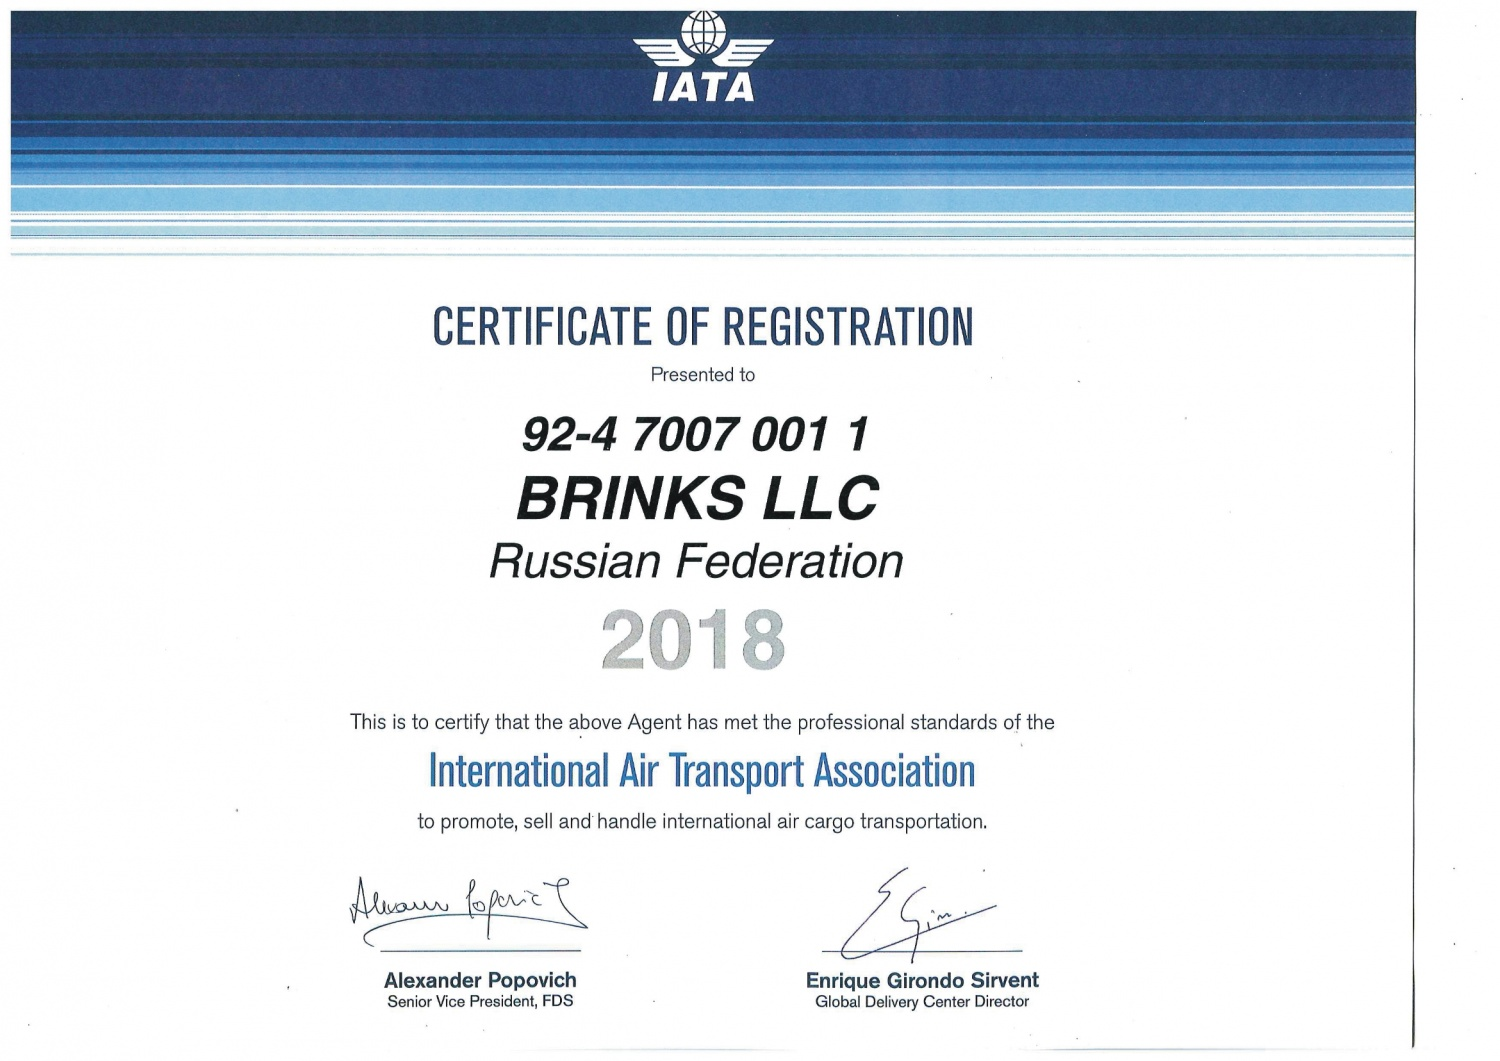 Brink's Company received IATA certificate